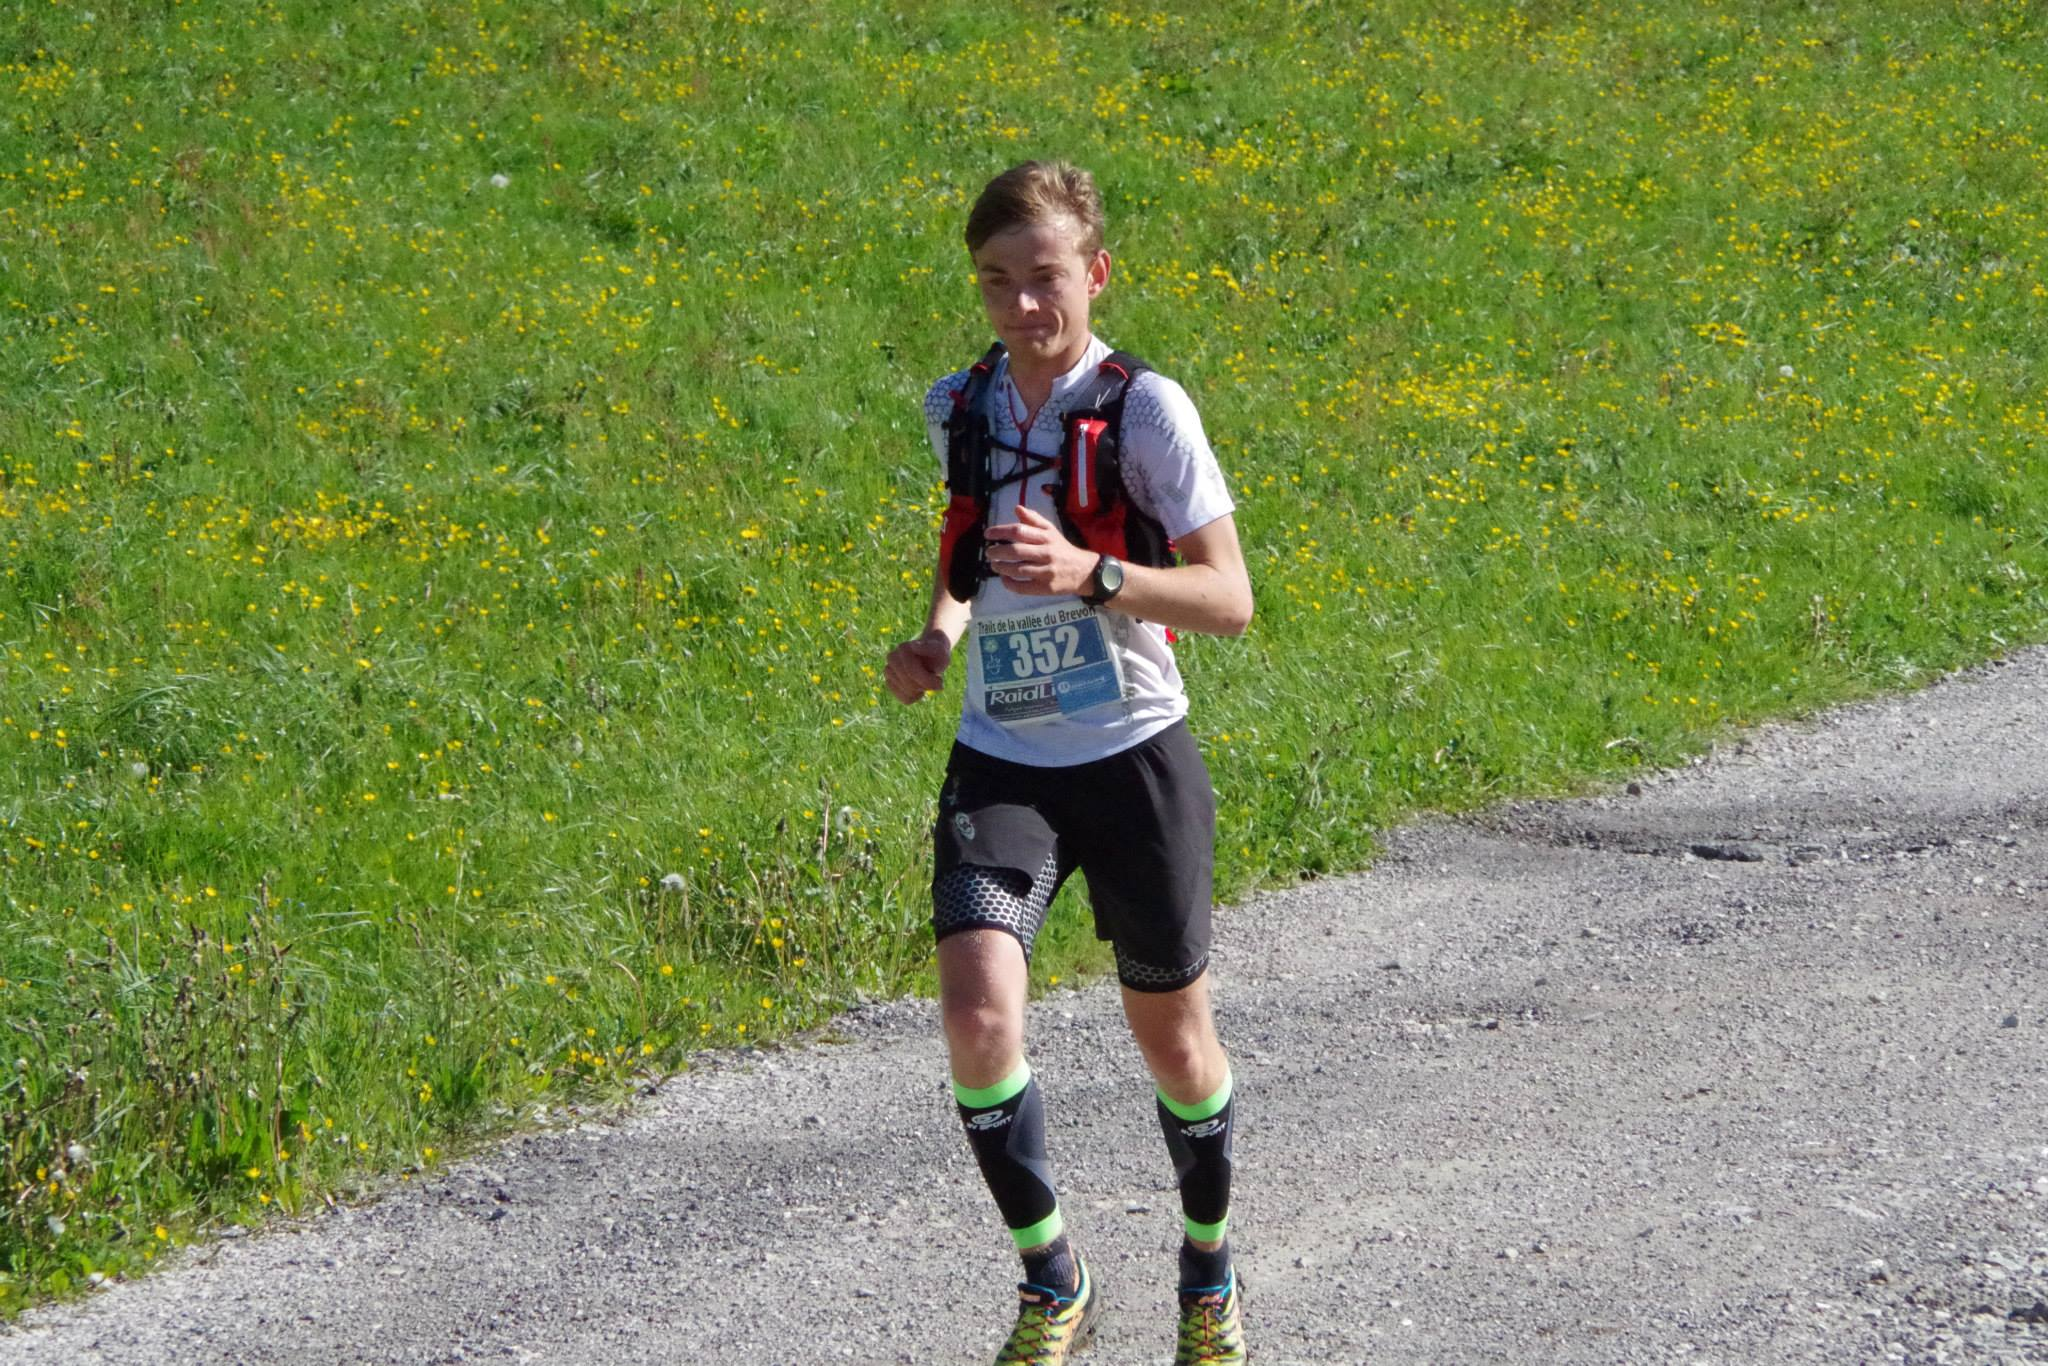 1493434 10153893141947782 3905913967446128889 o - RESULTATS, COMMENTAIRES, PHOTOS ET VIDEO DES TRAILS DE LA VALLEE DU BREVON / 24-05-15